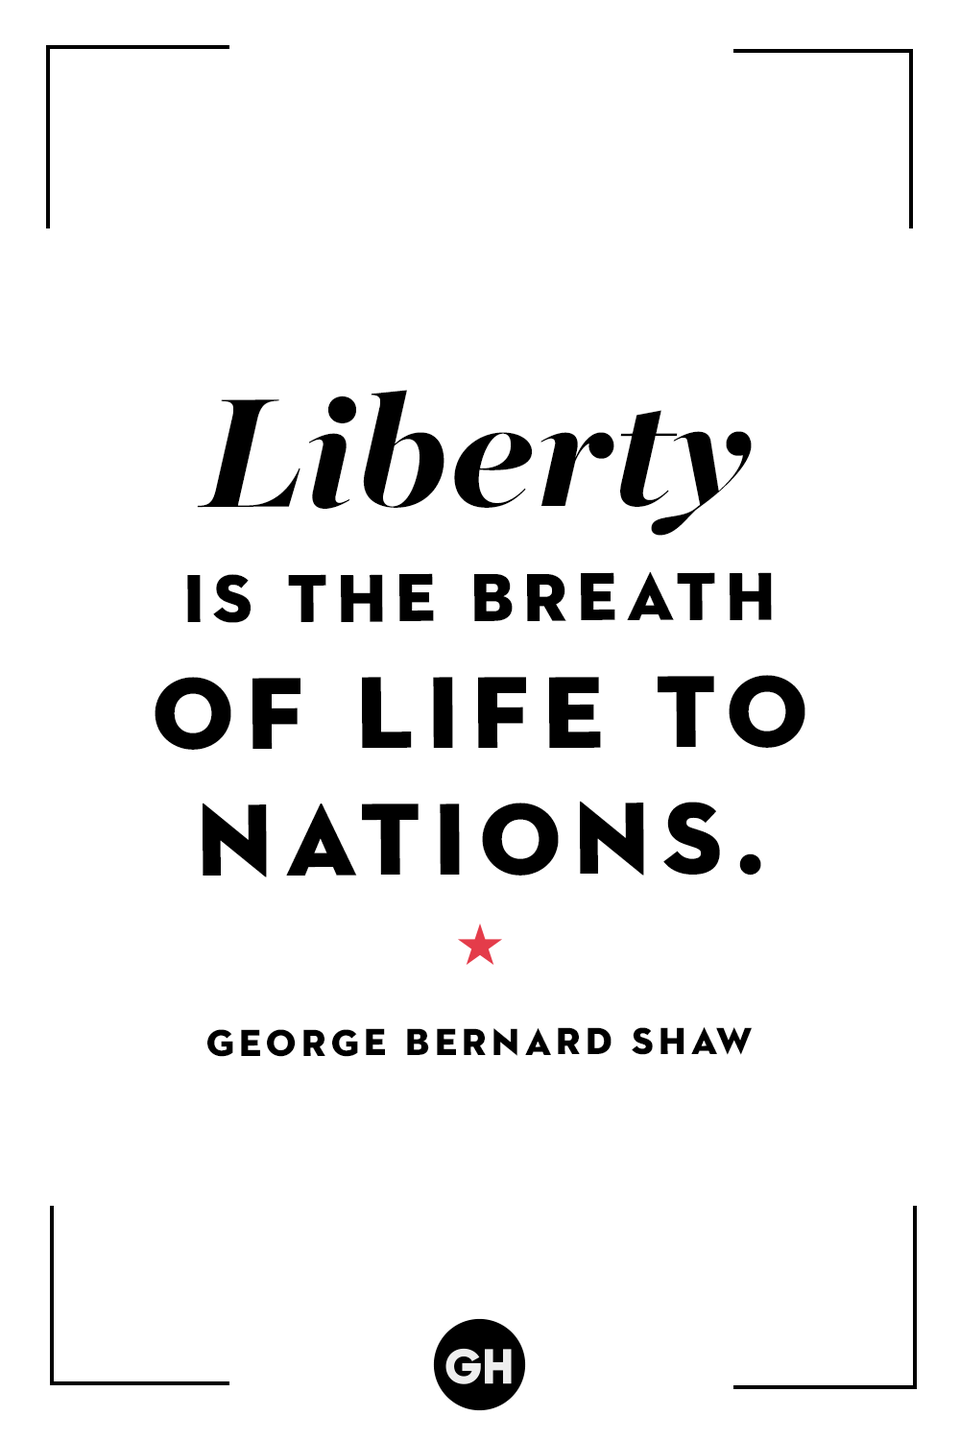 <p>Liberty is the breath of life to nations.</p>